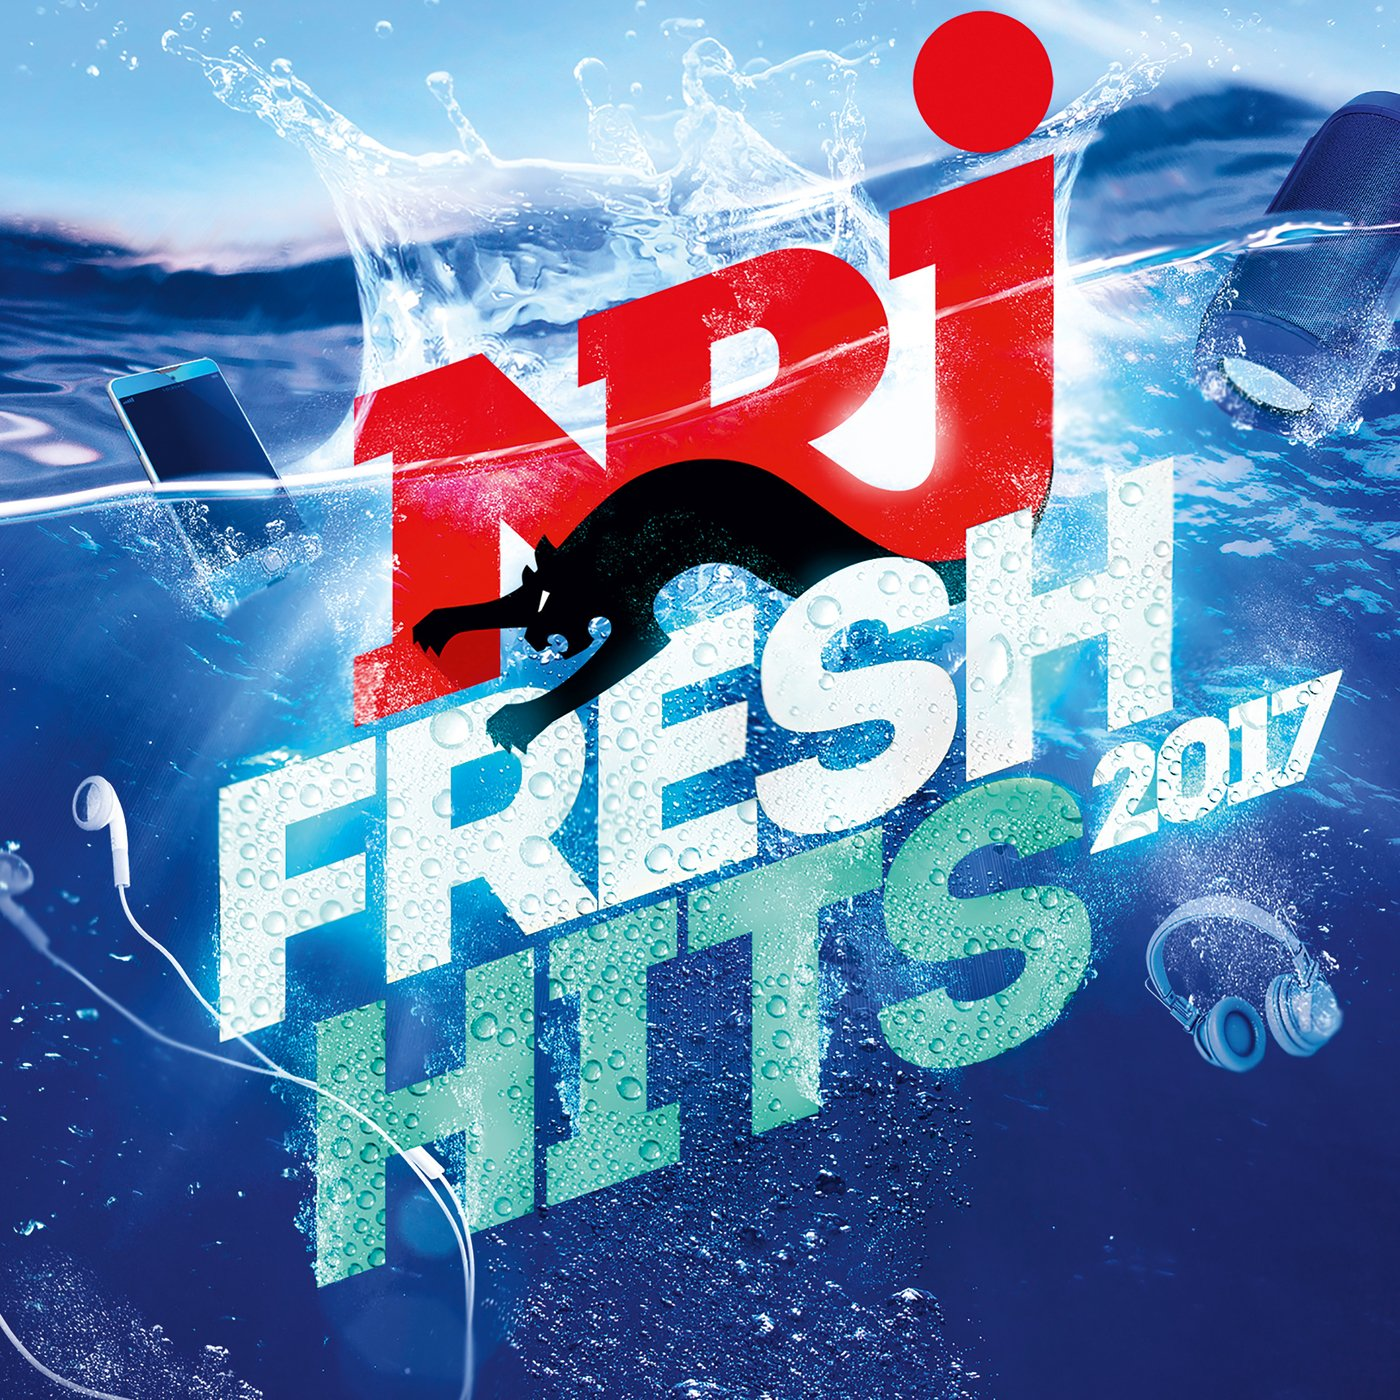 Mojblink si - VA-NRJ Fresh Hits 2017 (2017) MP3-r3Q